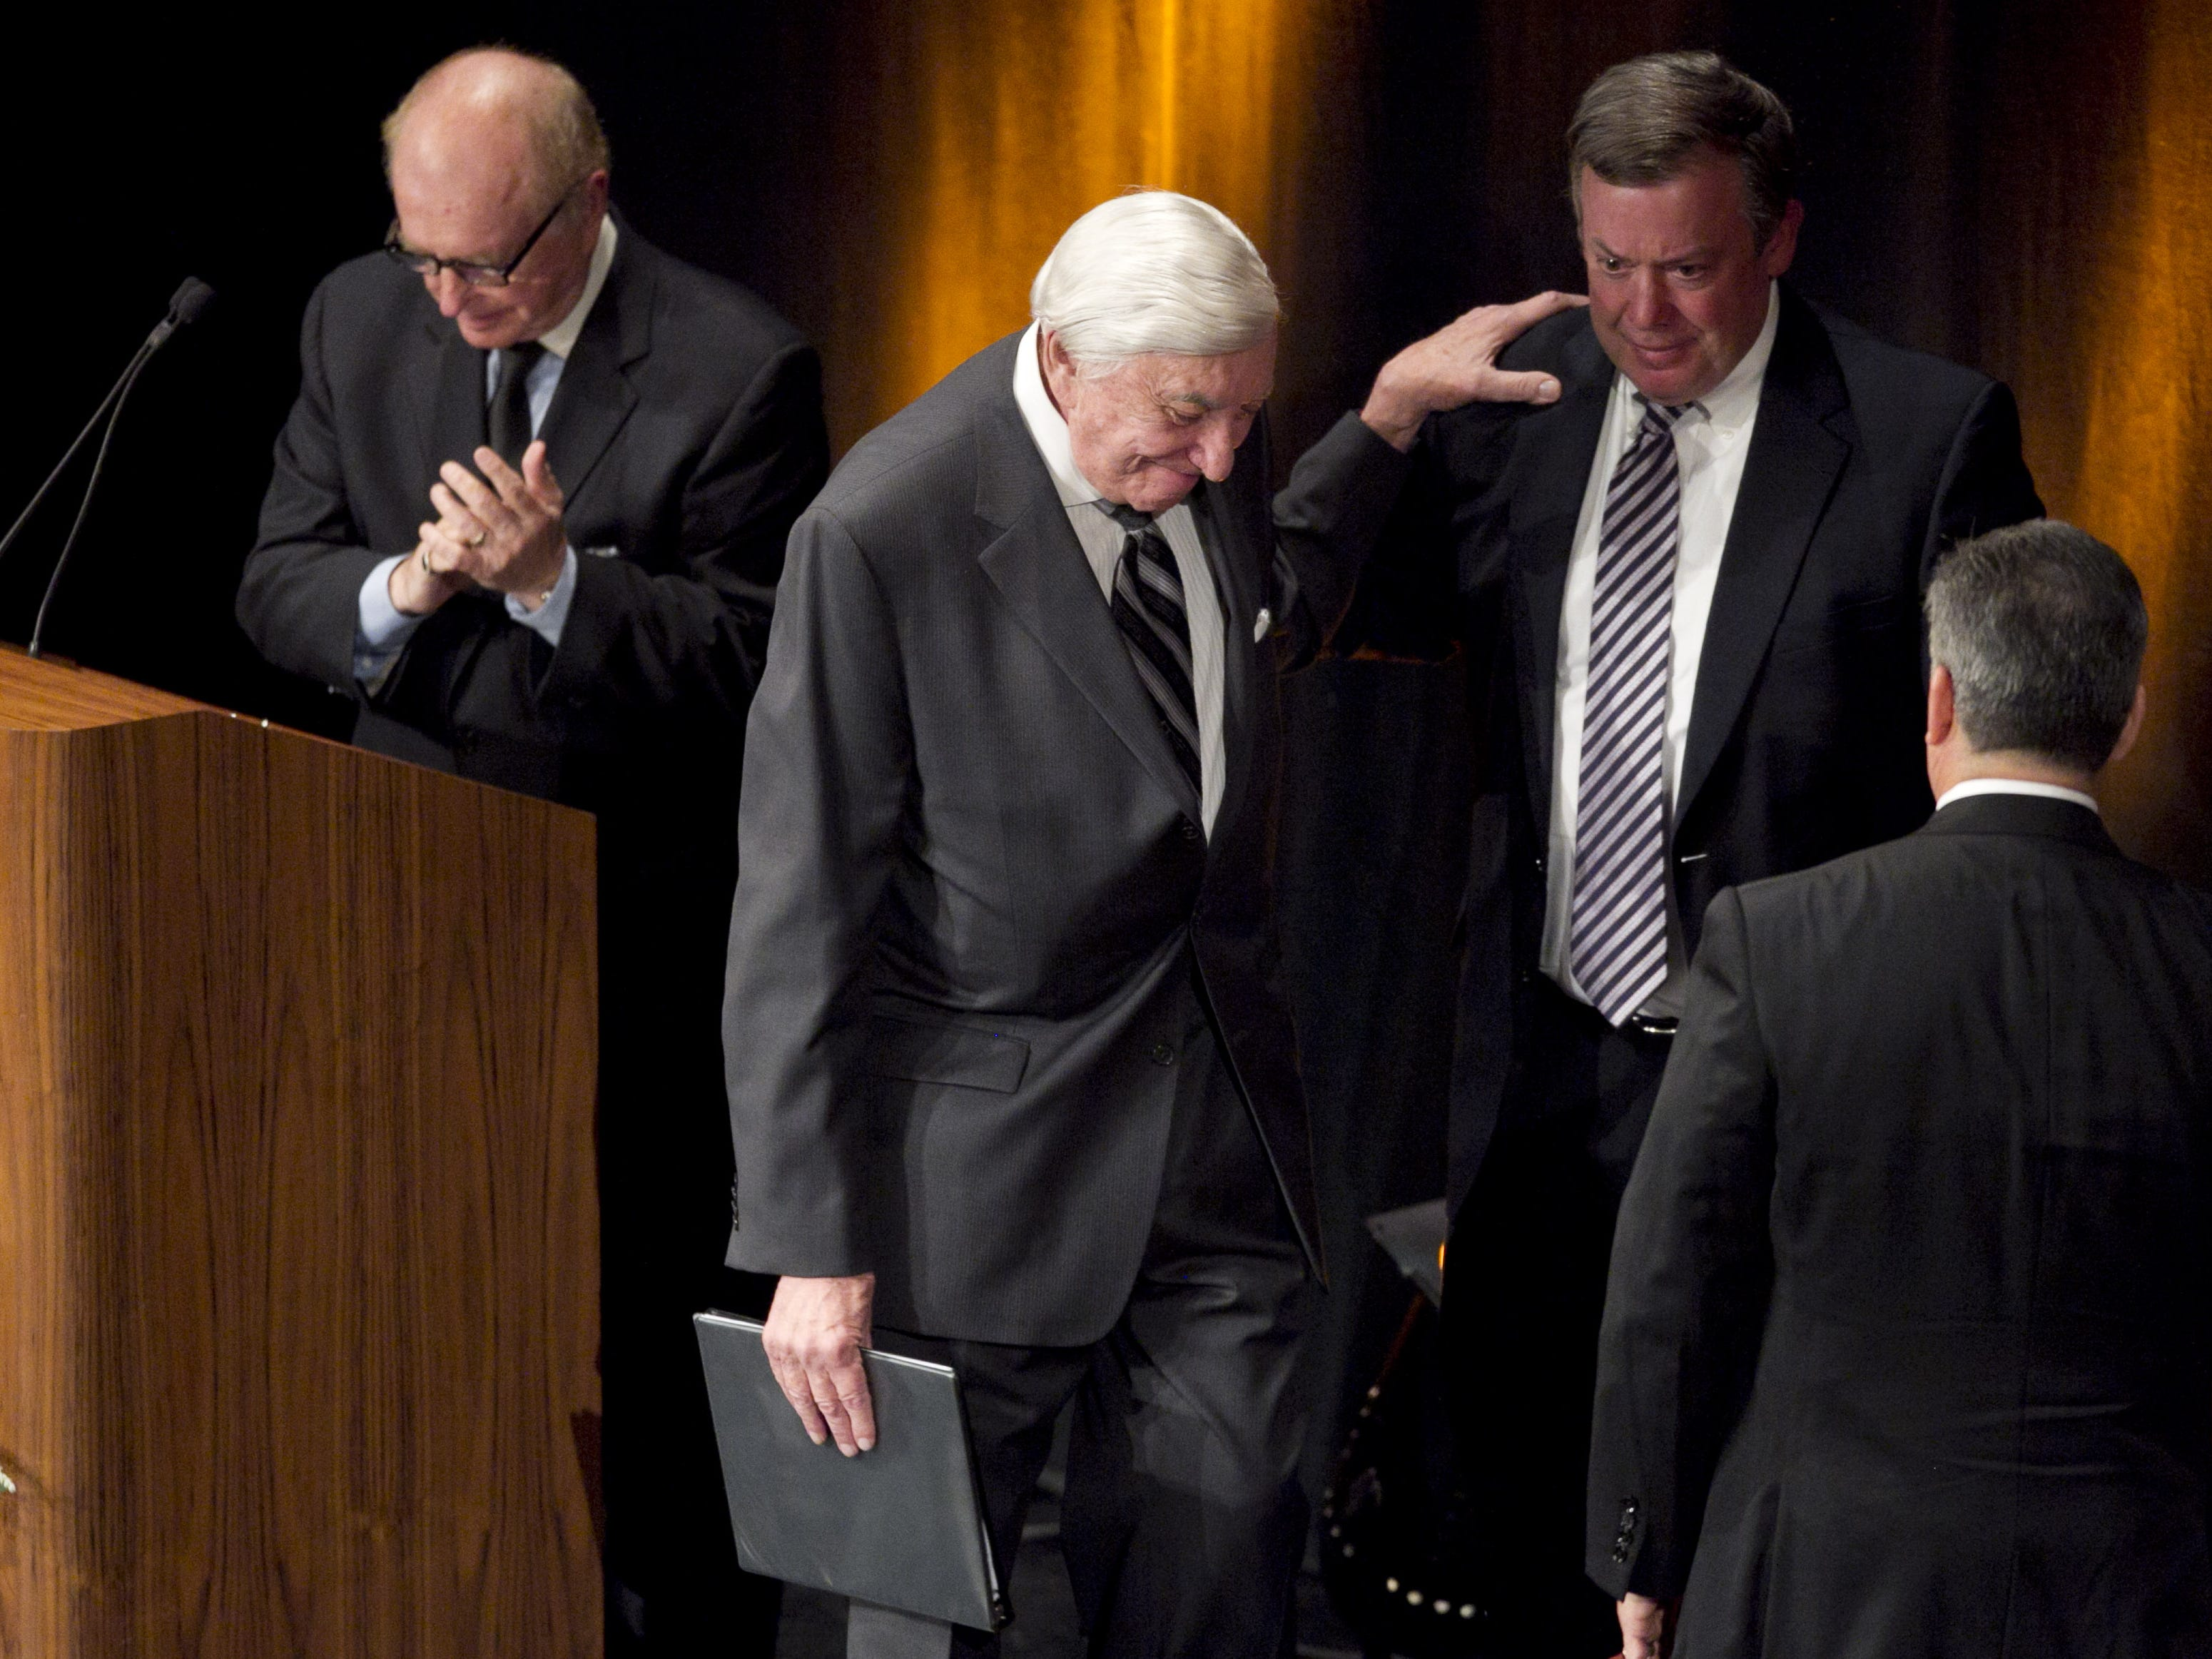 ASU president Michael Crow comforts a speaker at a 2013 memorial service for Eddie Basha, an Arizona grocery chain owner.